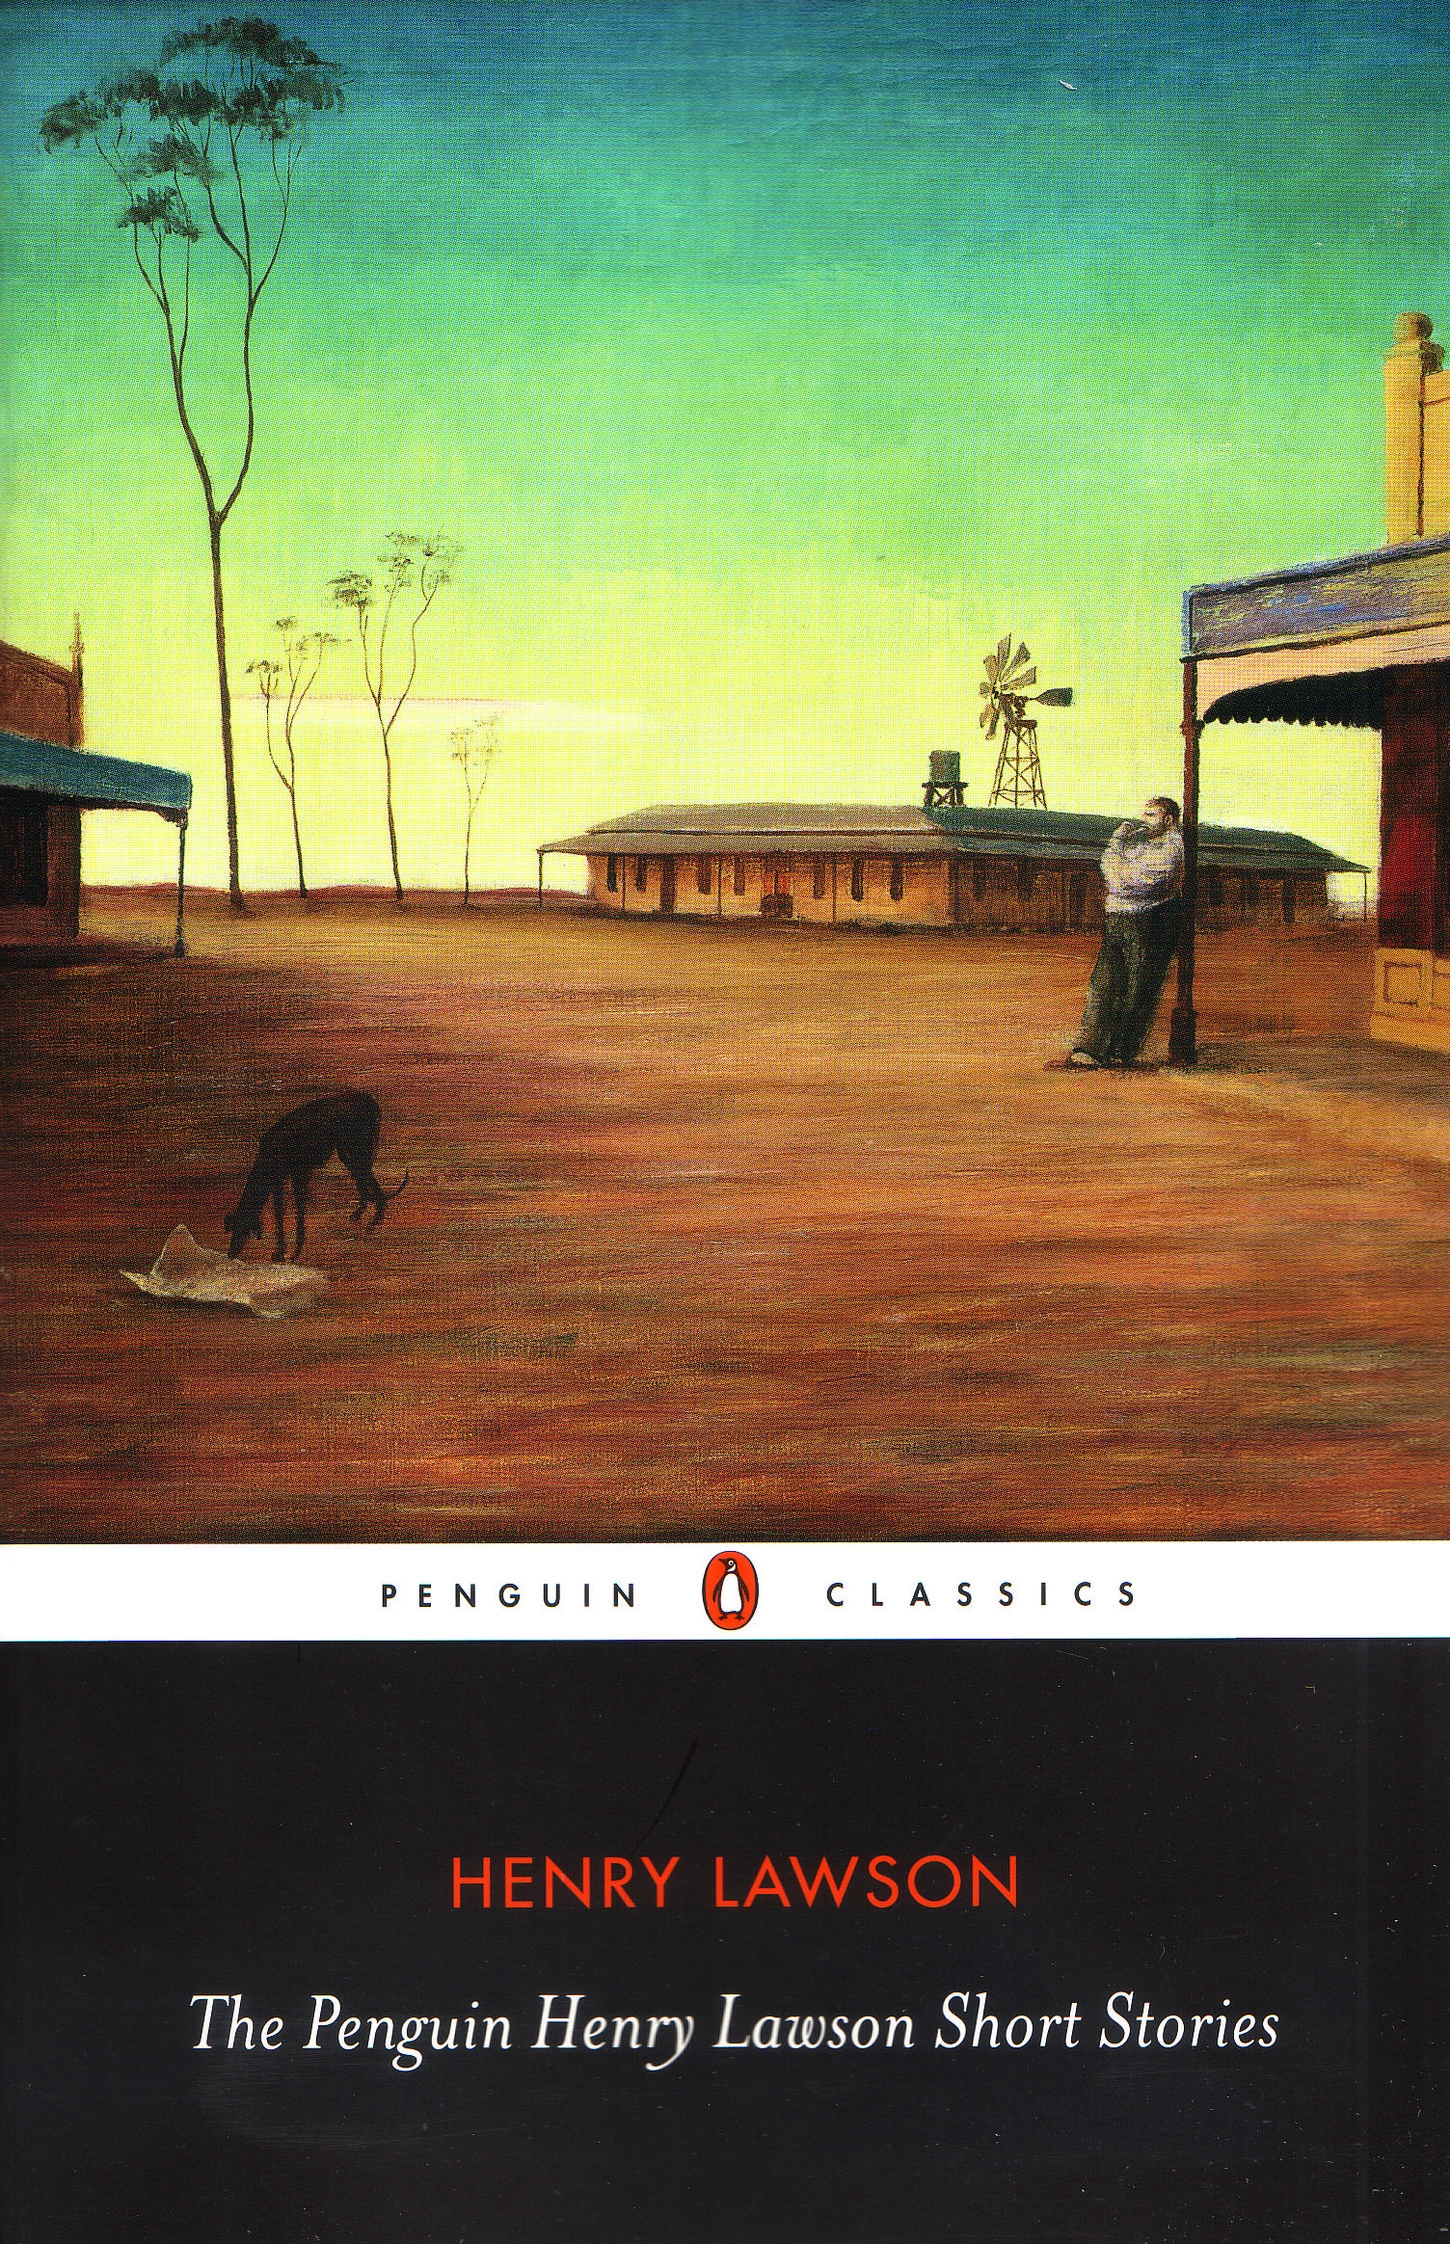 lawson s drovers wife and the loaded The drover's wife: characters & quotes henry lawson's story ''the drover's wife'' follows the wife of a drover and is told entirely from her perspective.